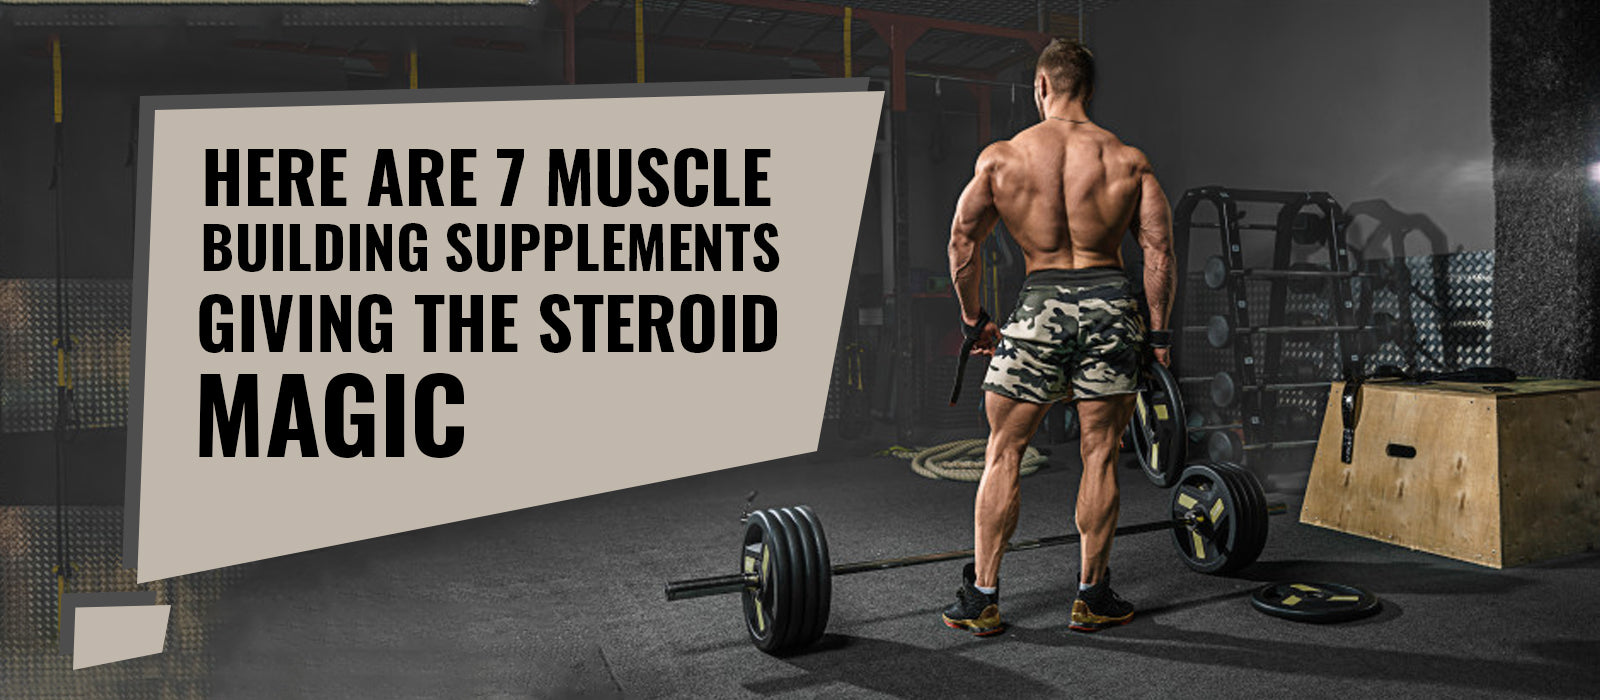 Here Are 7 Muscle Building Supplements Giving The Steroid Magic